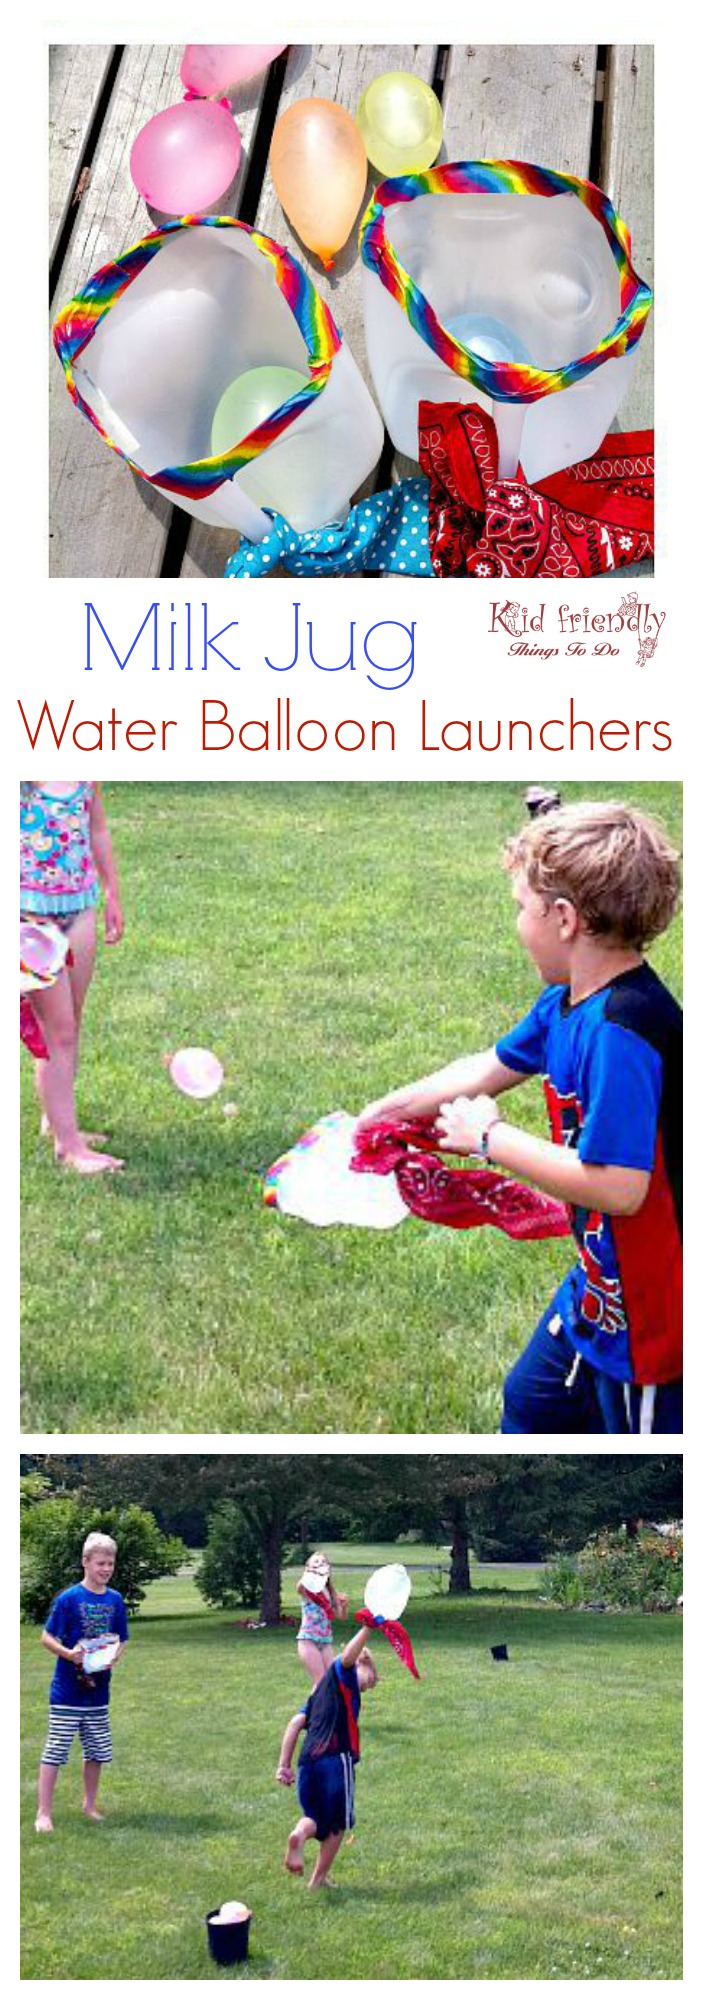 Over 30 Easy DIY Summer Outdoor Games to play with the kids! Water balloon games and more! www.kidfriendlythingstodo.com DIY Milk Jug Water Balloon Game